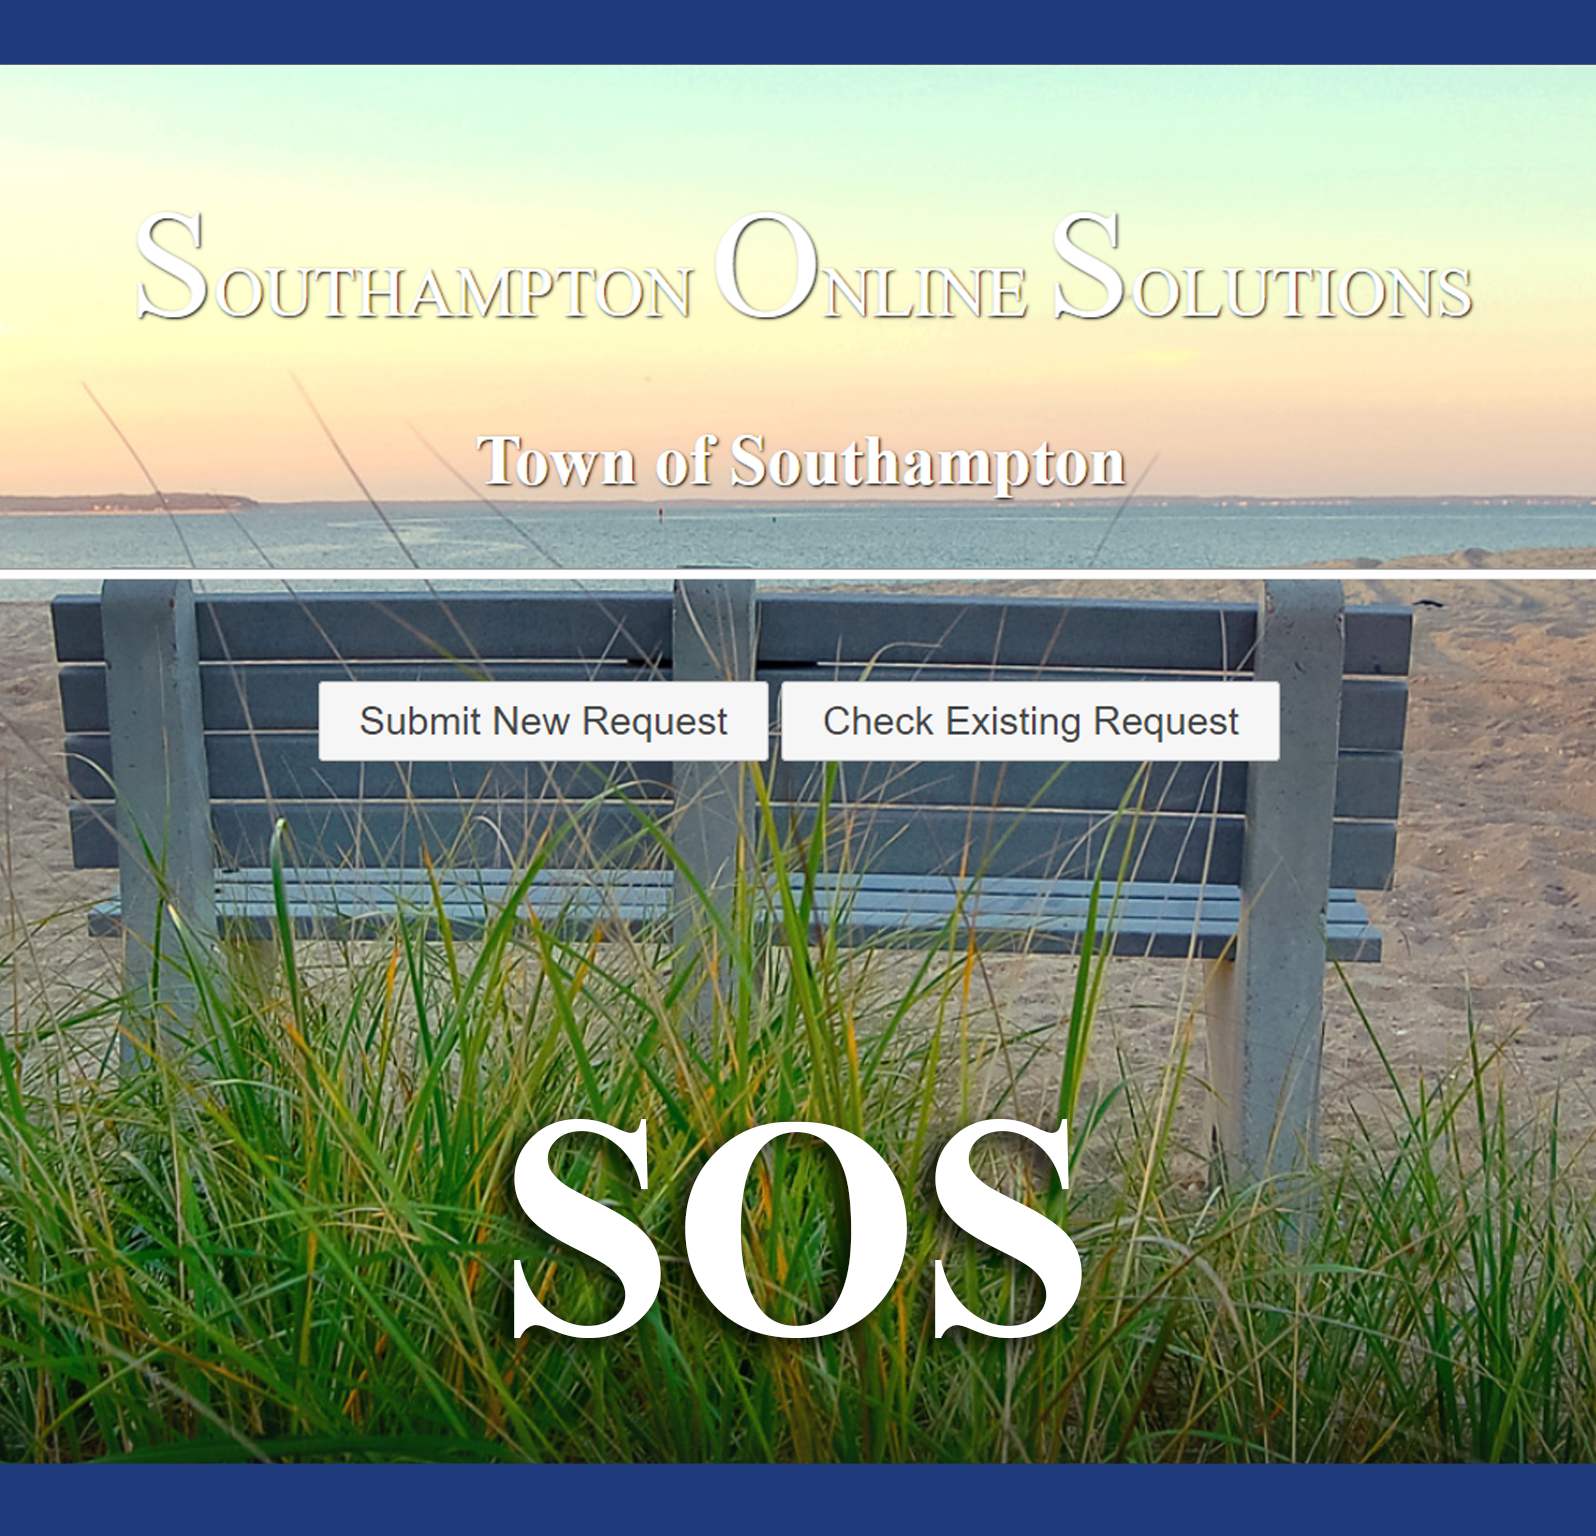 Southampton Online Solutions